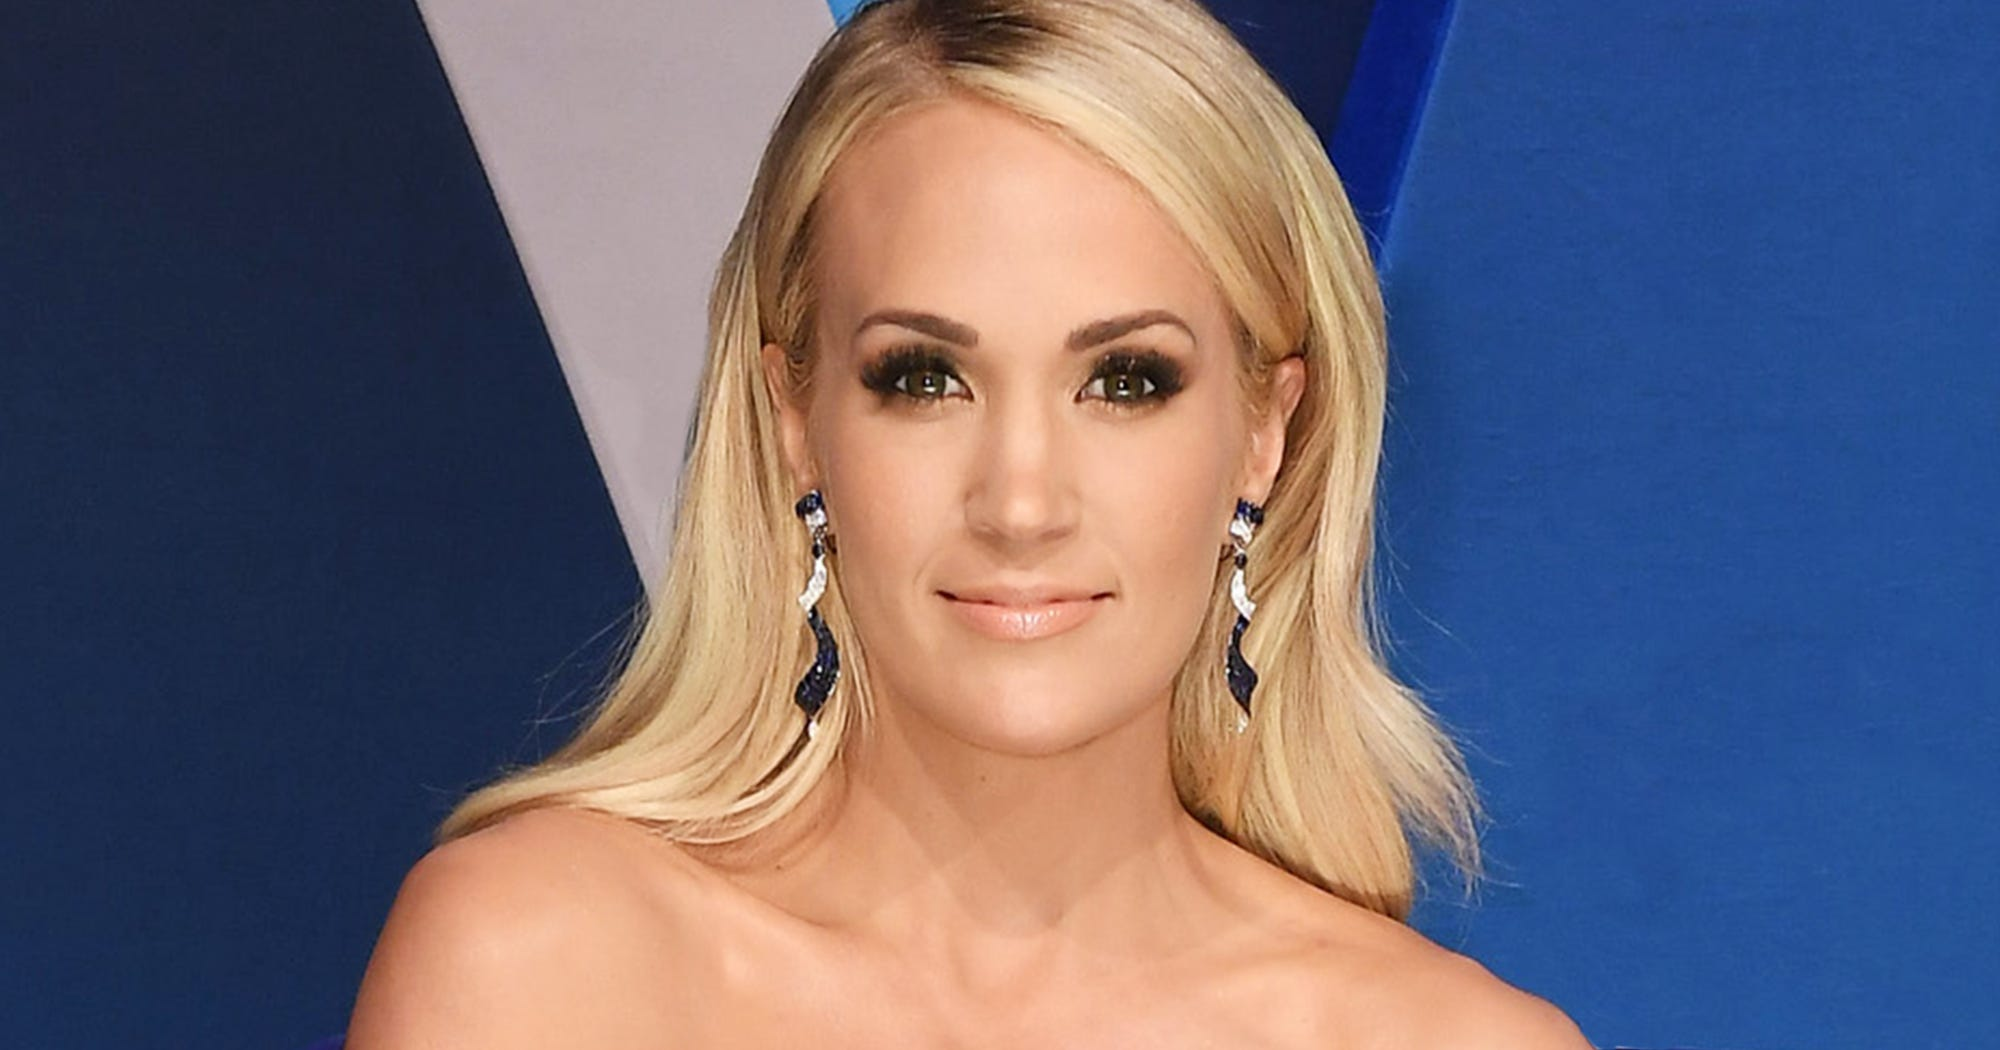 new underwood single guys Purists recoiled and history was made as shania ushered in a new generation of female country singers her 2013 breakthrough single carrie underwood.